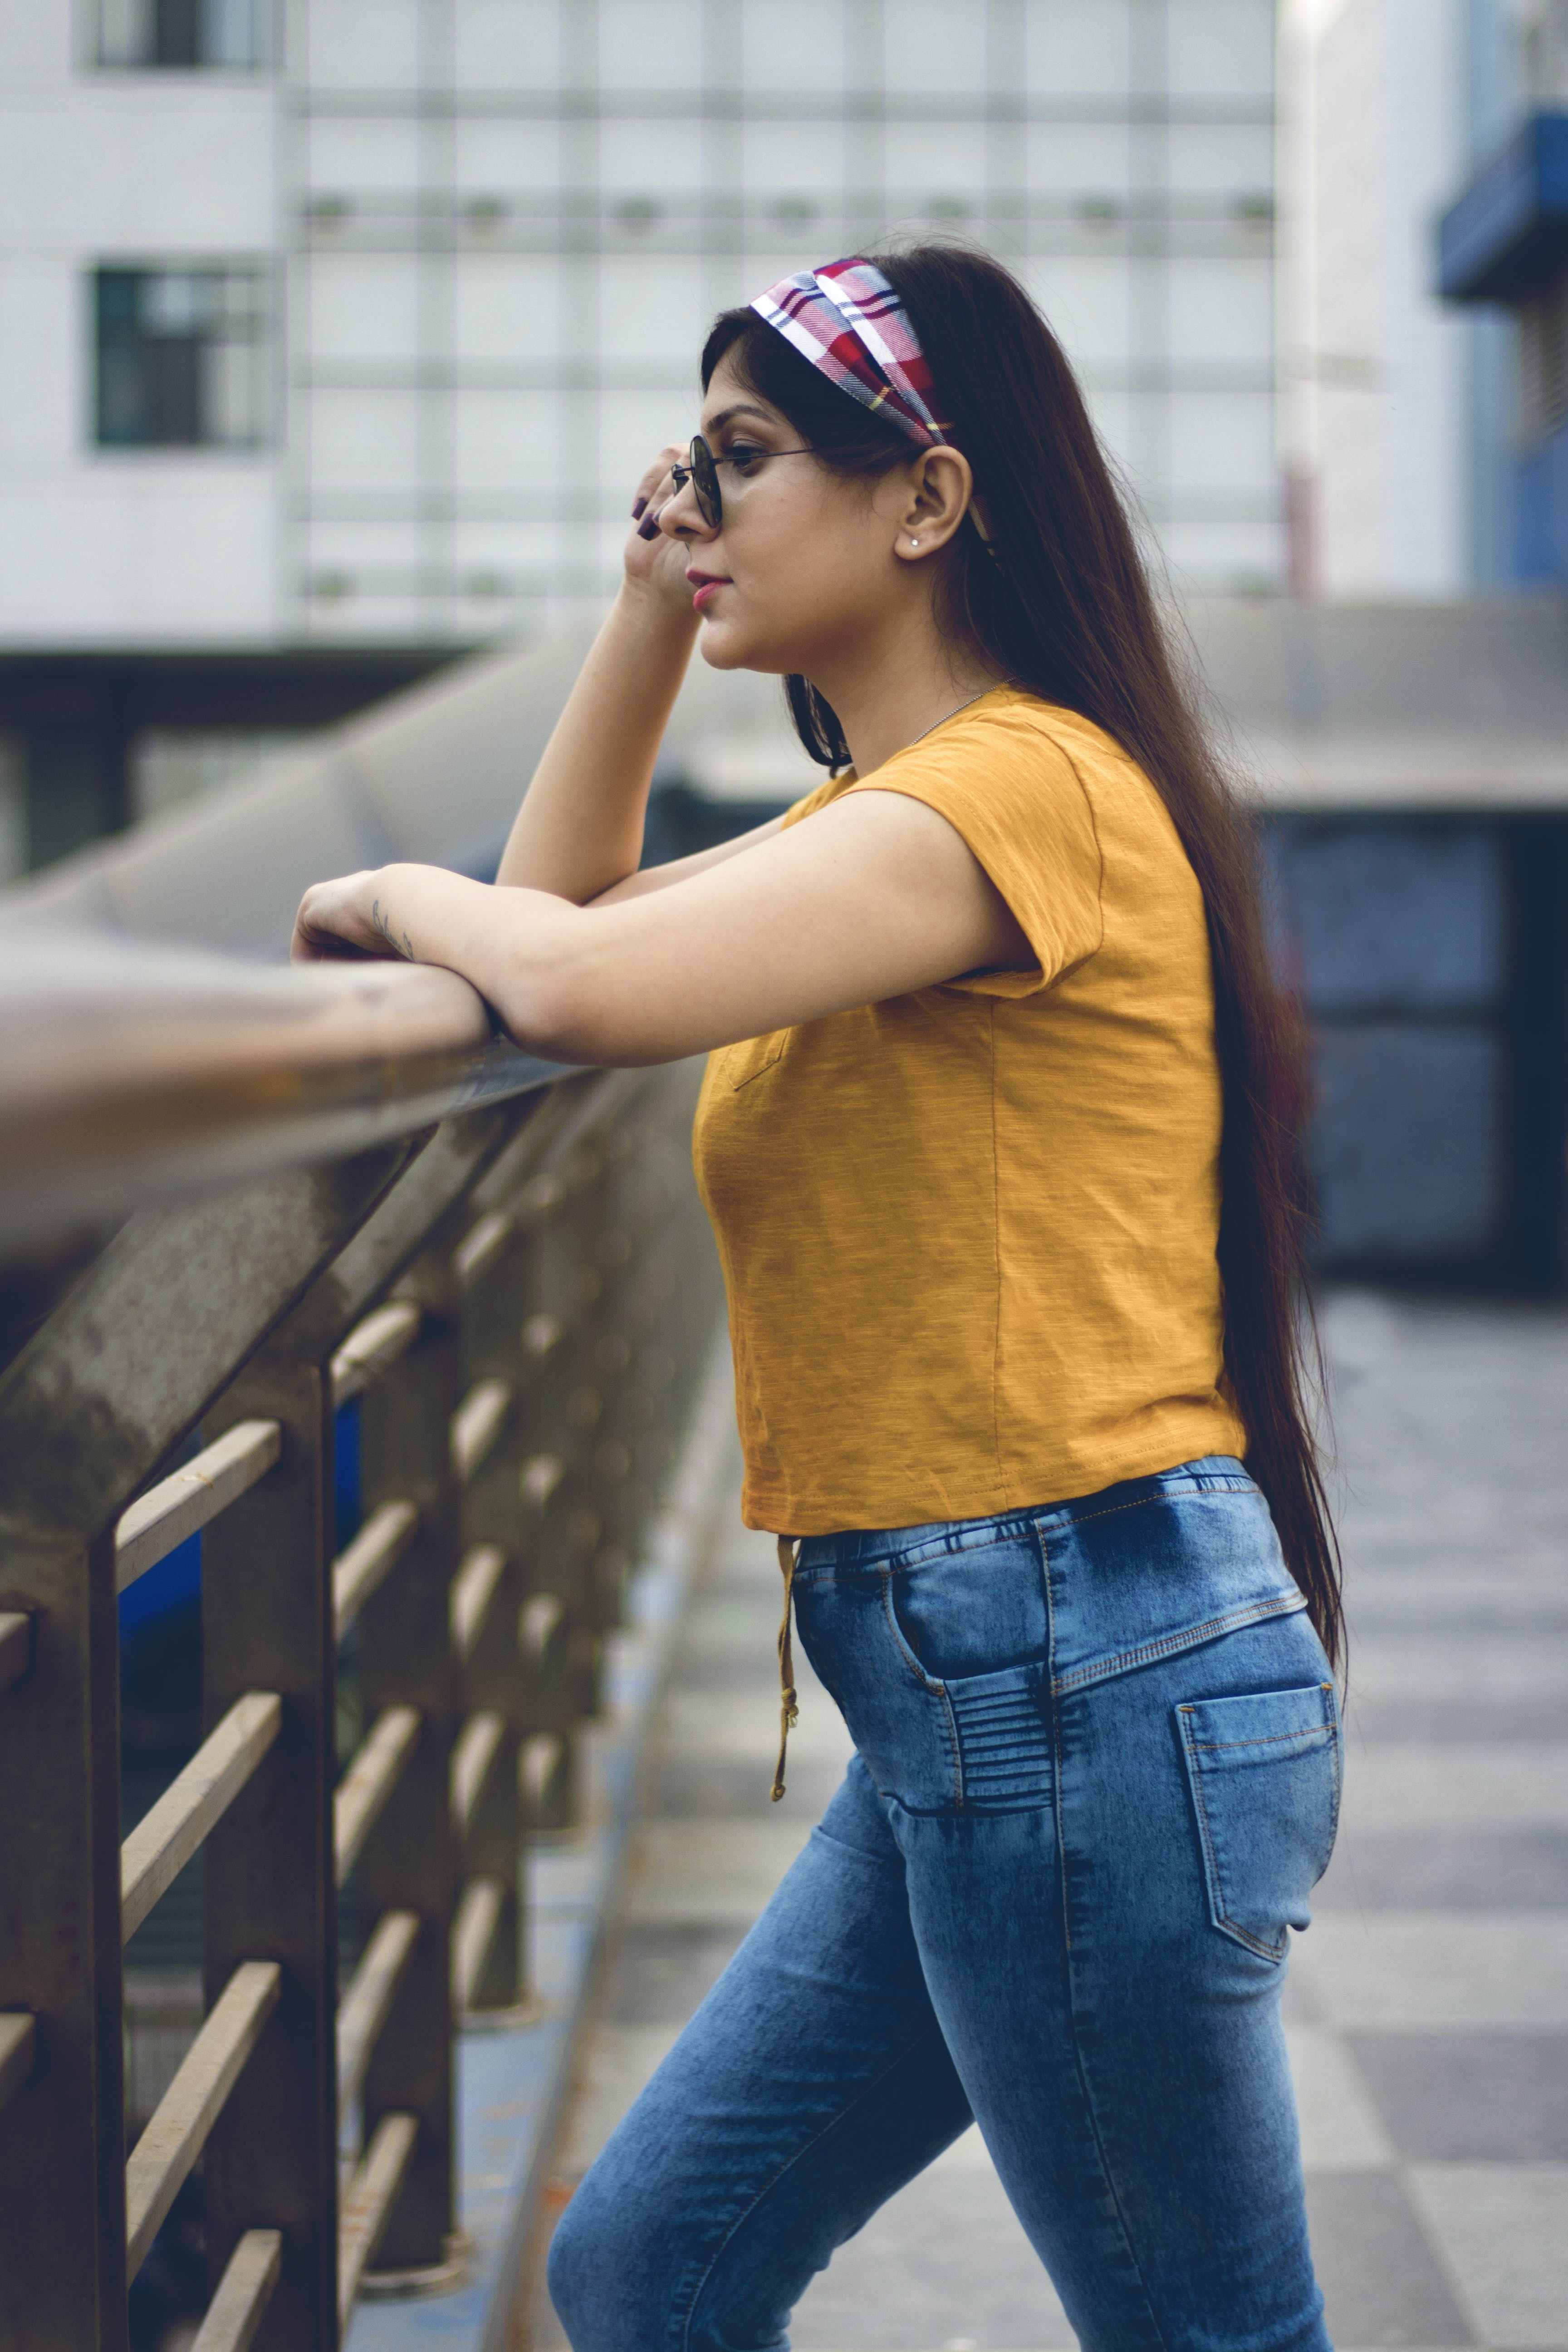 Woman Wearing Sunglasses Near High-rise Buildings